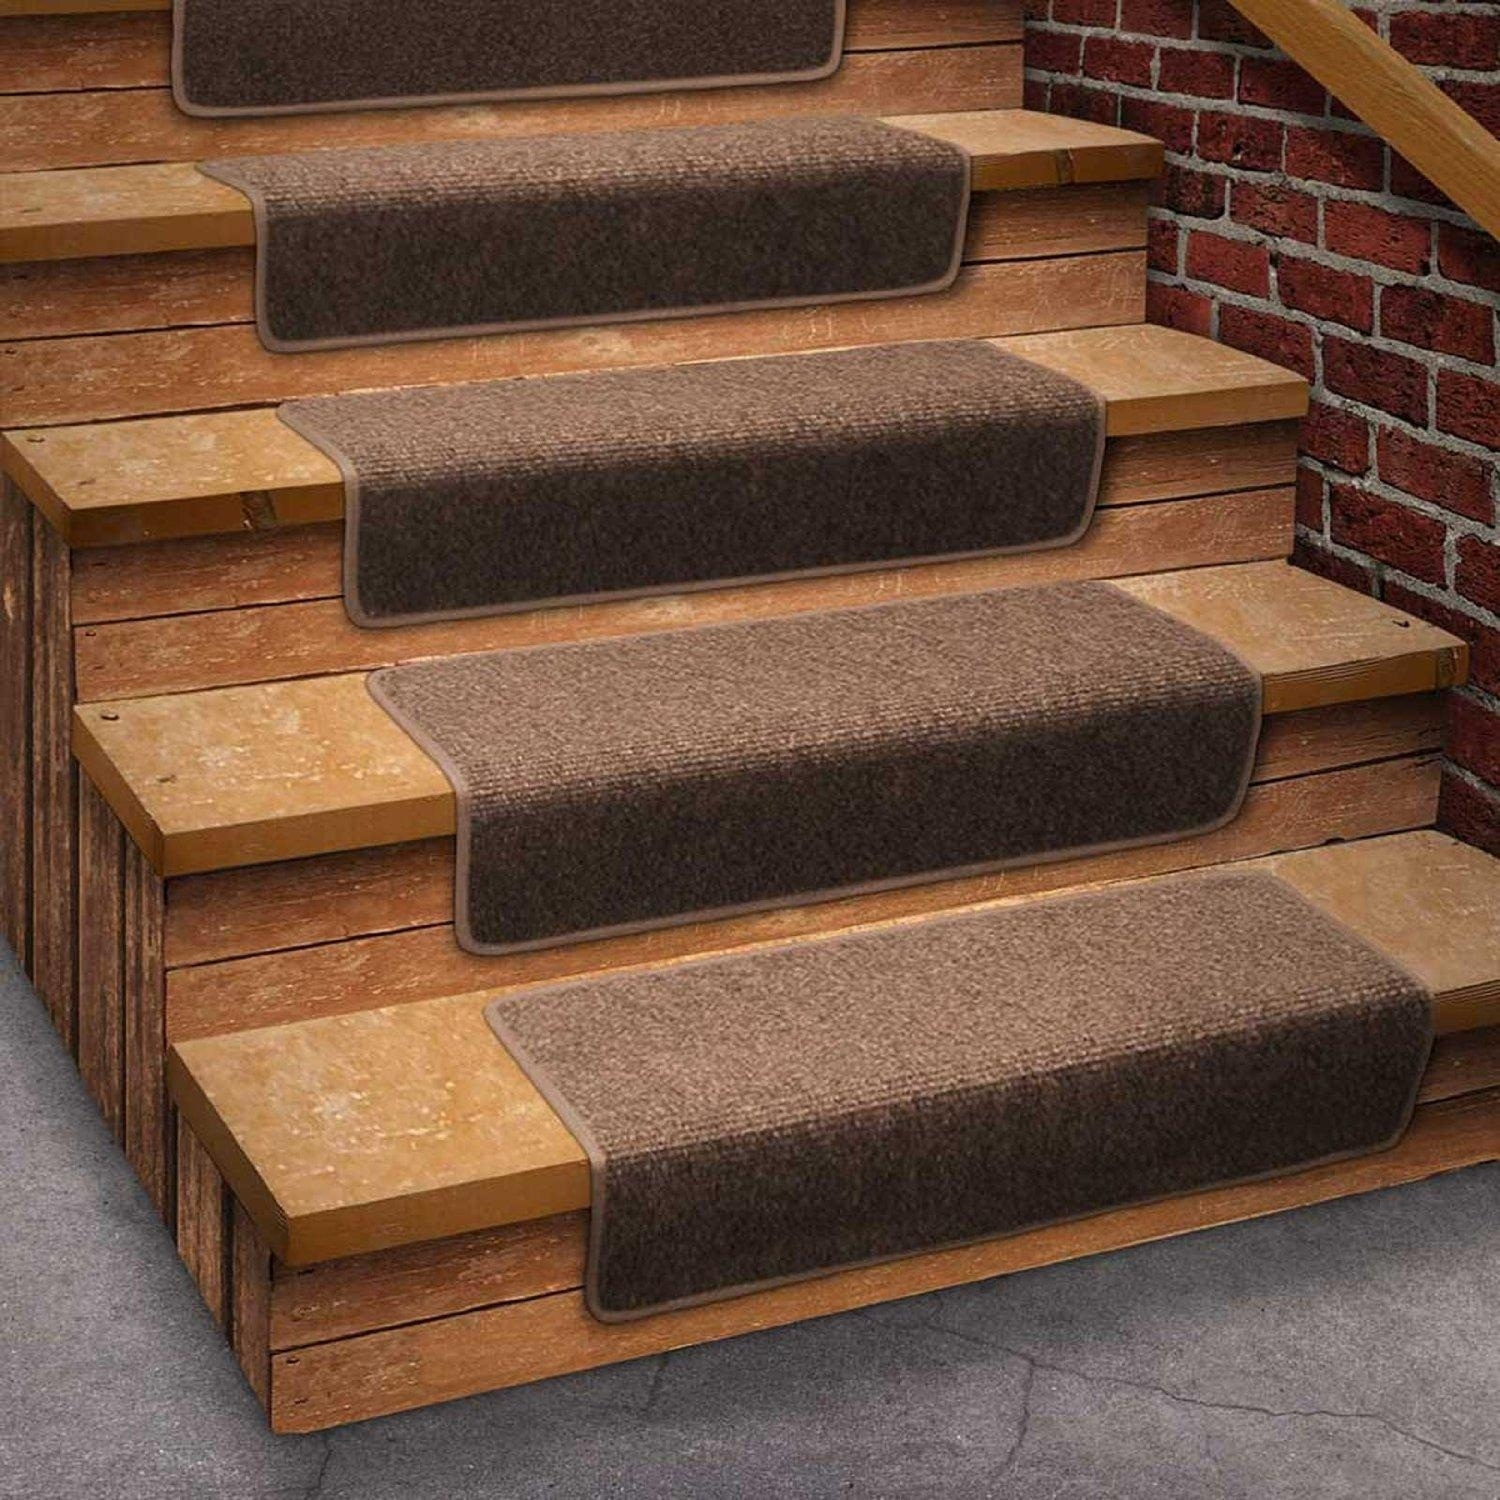 Carpet Treads For Wood Stairs Ideas On Foter | Gray Carpet Stair Treads | Black | Set | Wood | Grey Patterned | Fitting Loop Pile Carpet